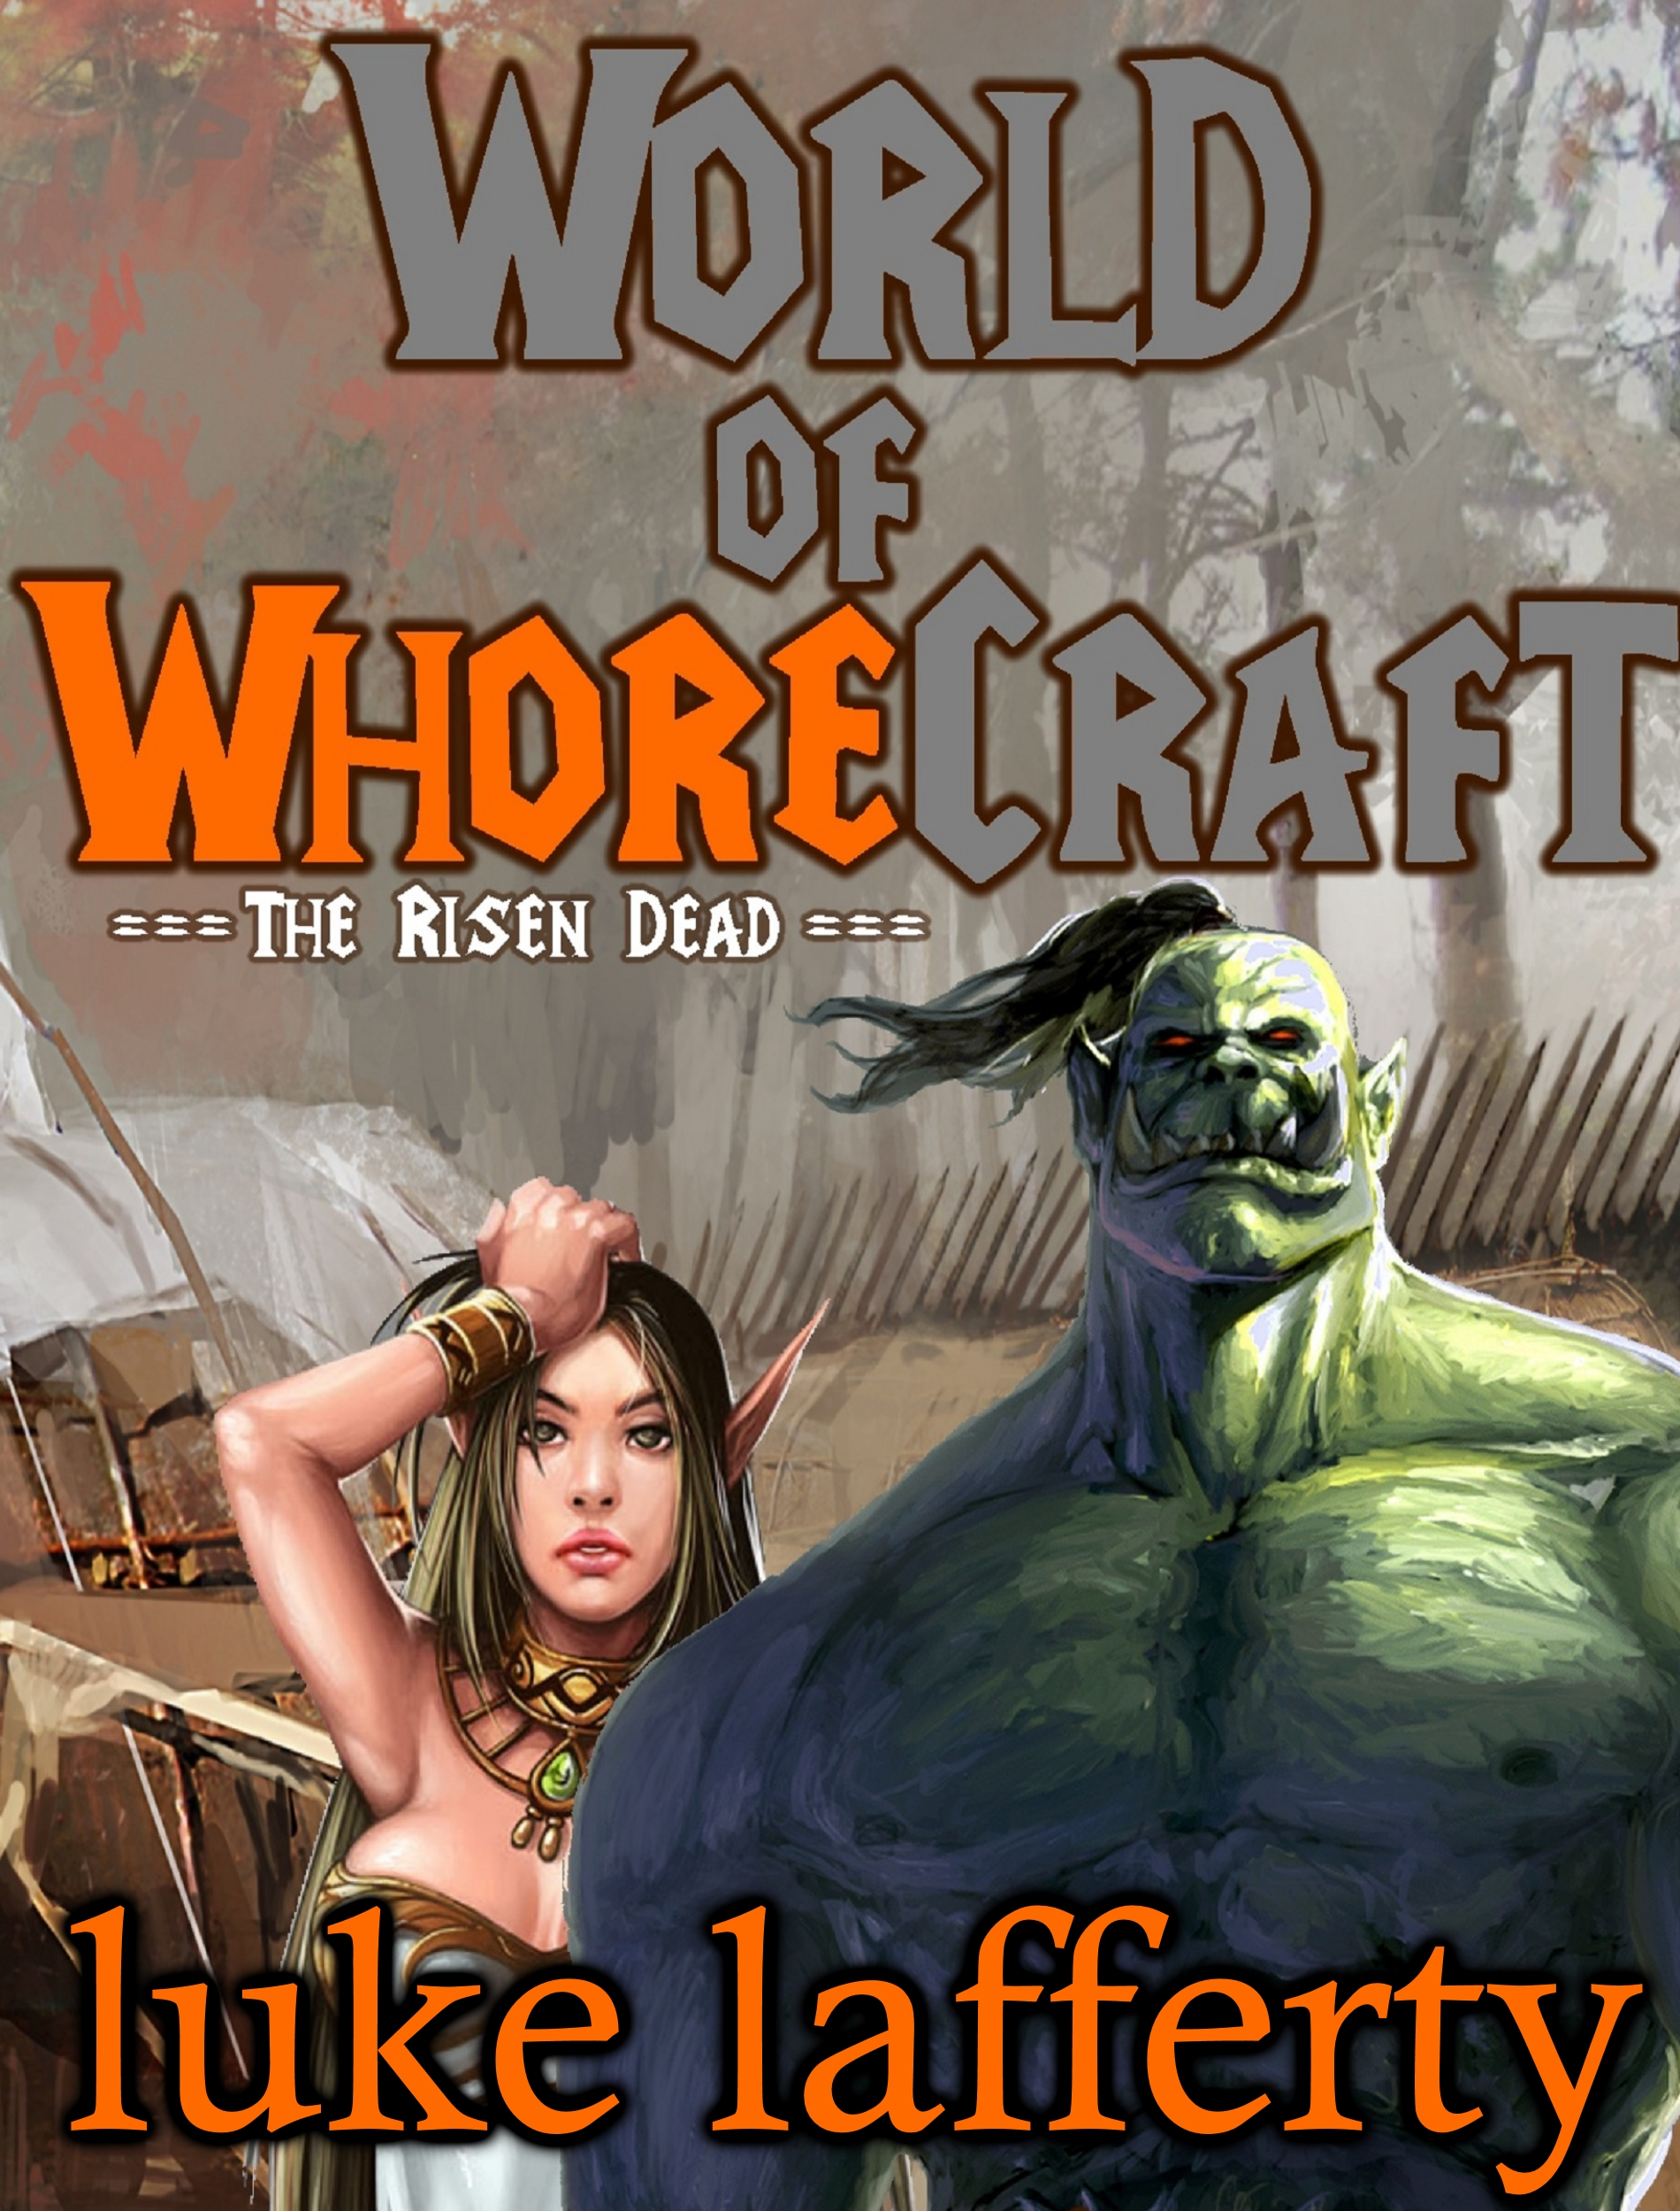 Word of whorecraft erotica scene